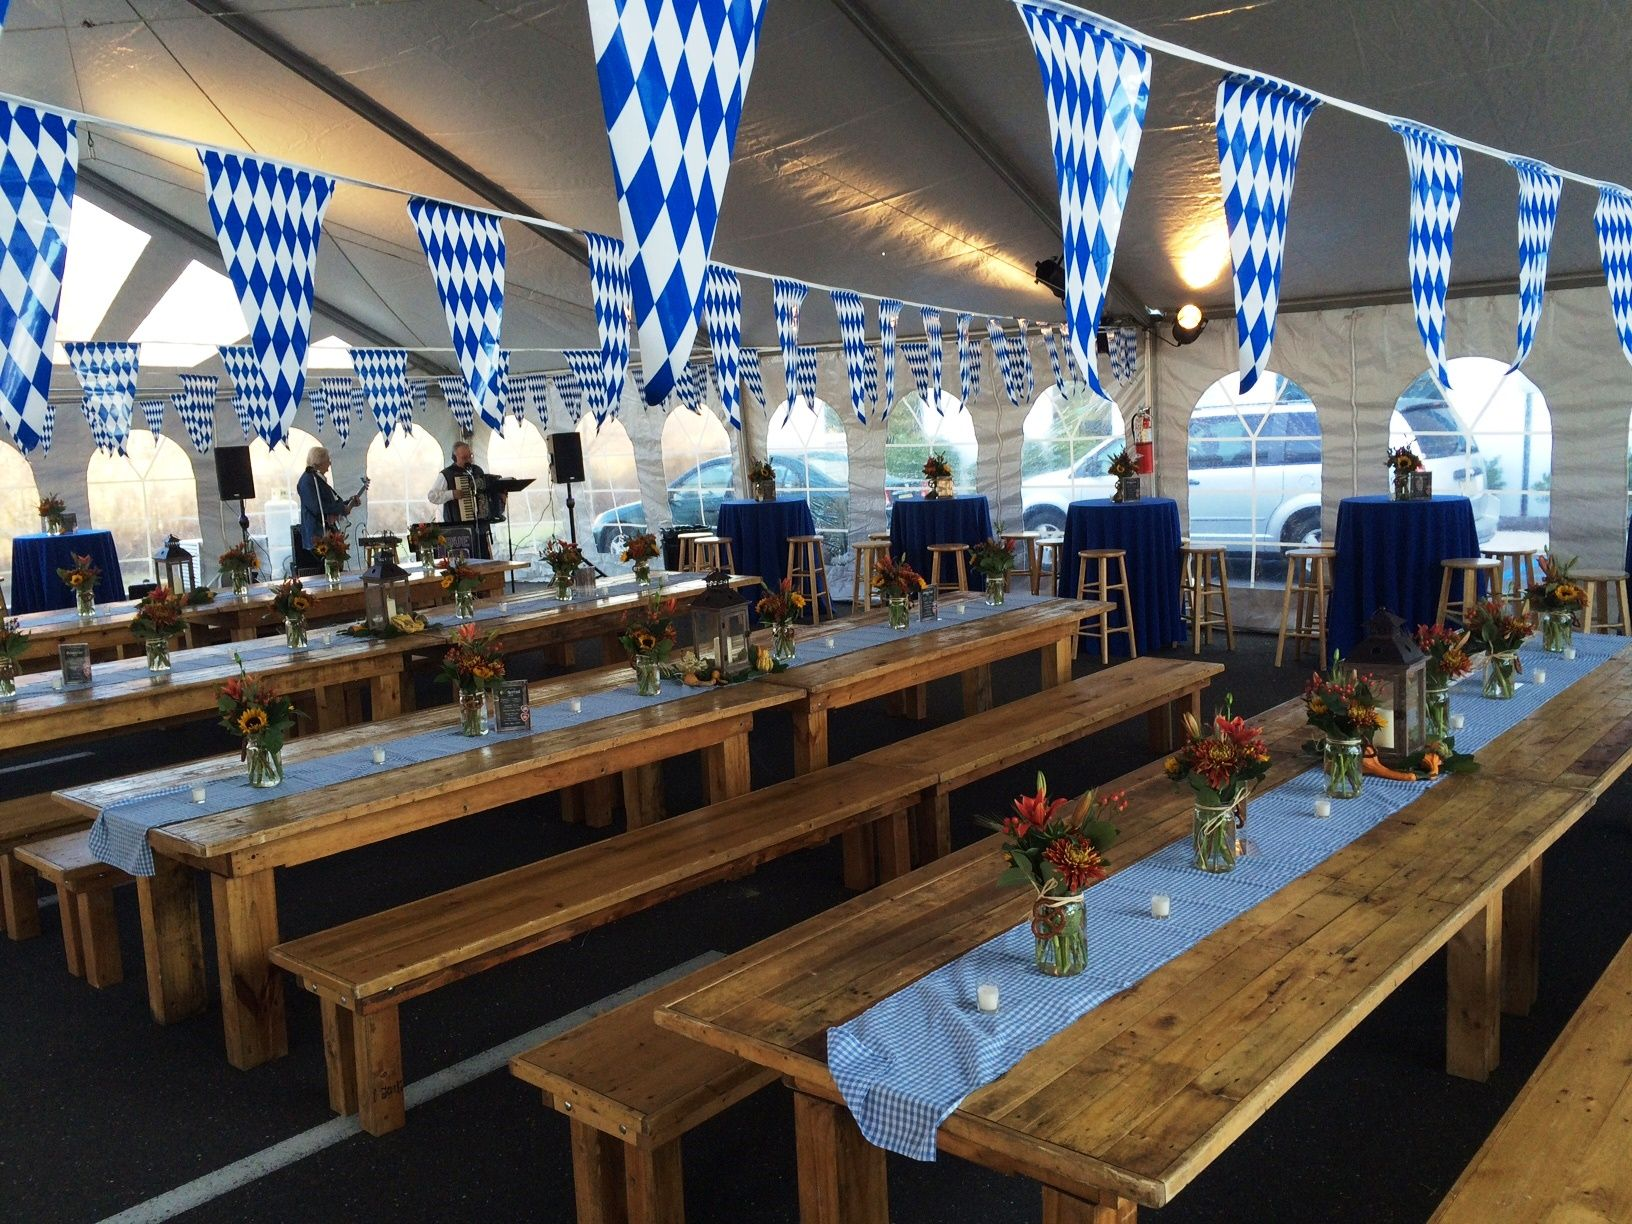 Oktoberfest theme decor event decor ideas pinterest for Oktoberfest dekoration